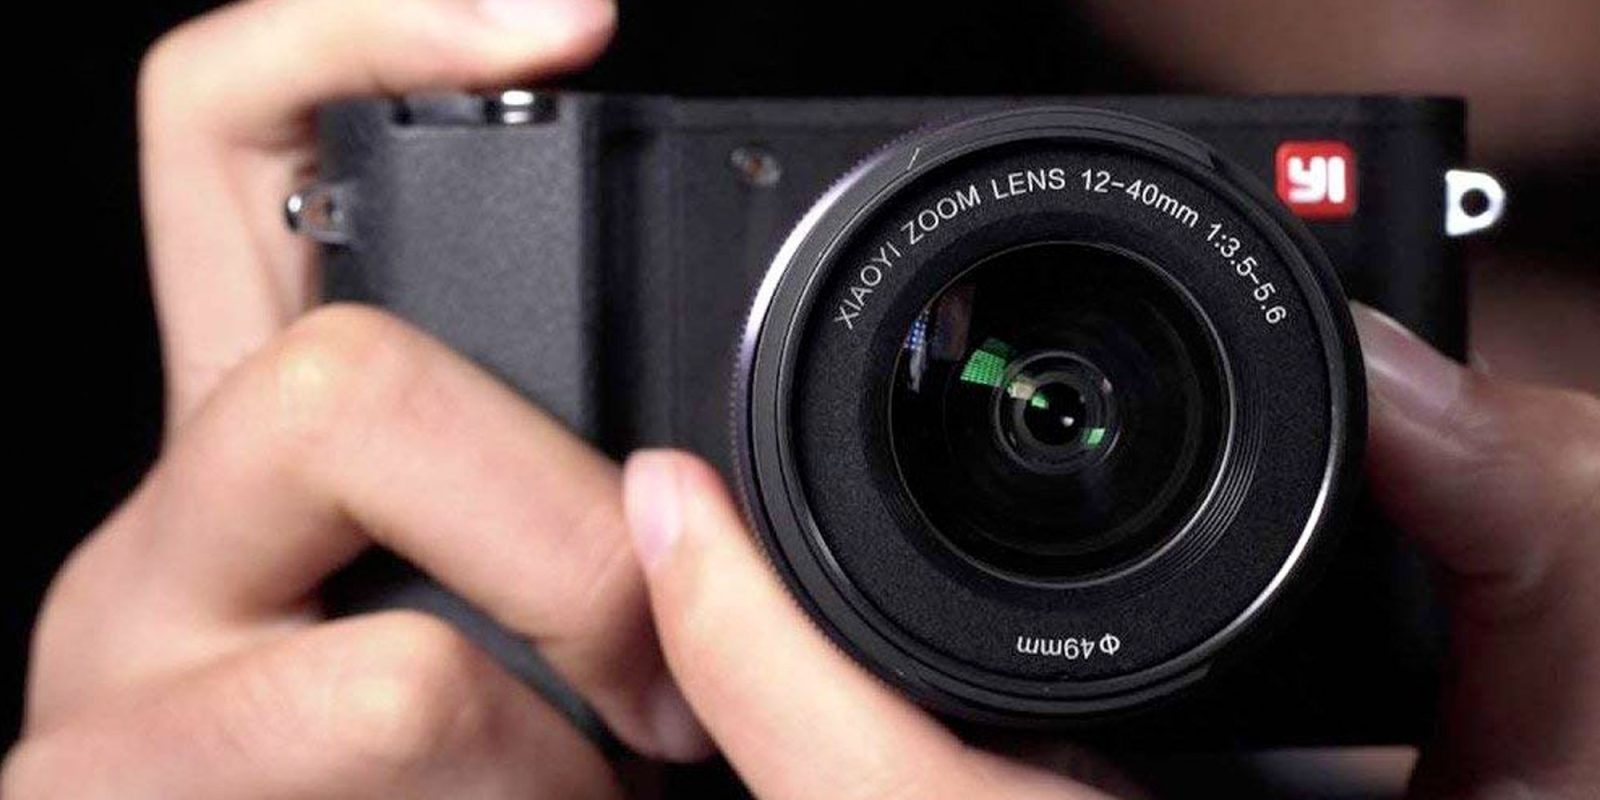 Save $140 on YI's 4K mirrorless camera with two lenses, now $209 shipped